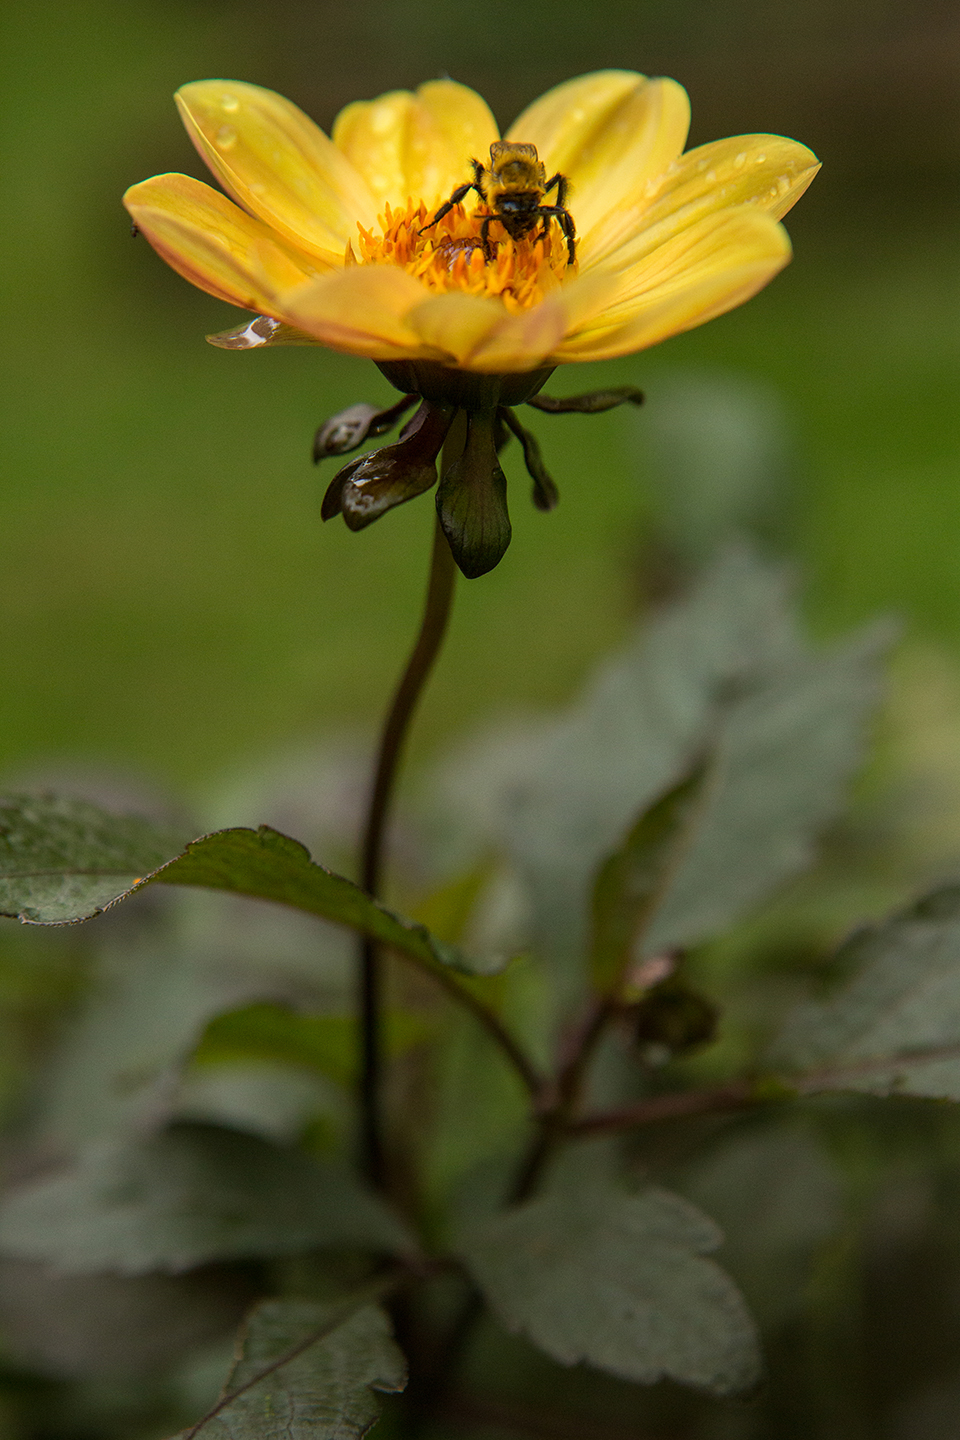 Yellow-Dahlia-with-an-Insect-3.jpg